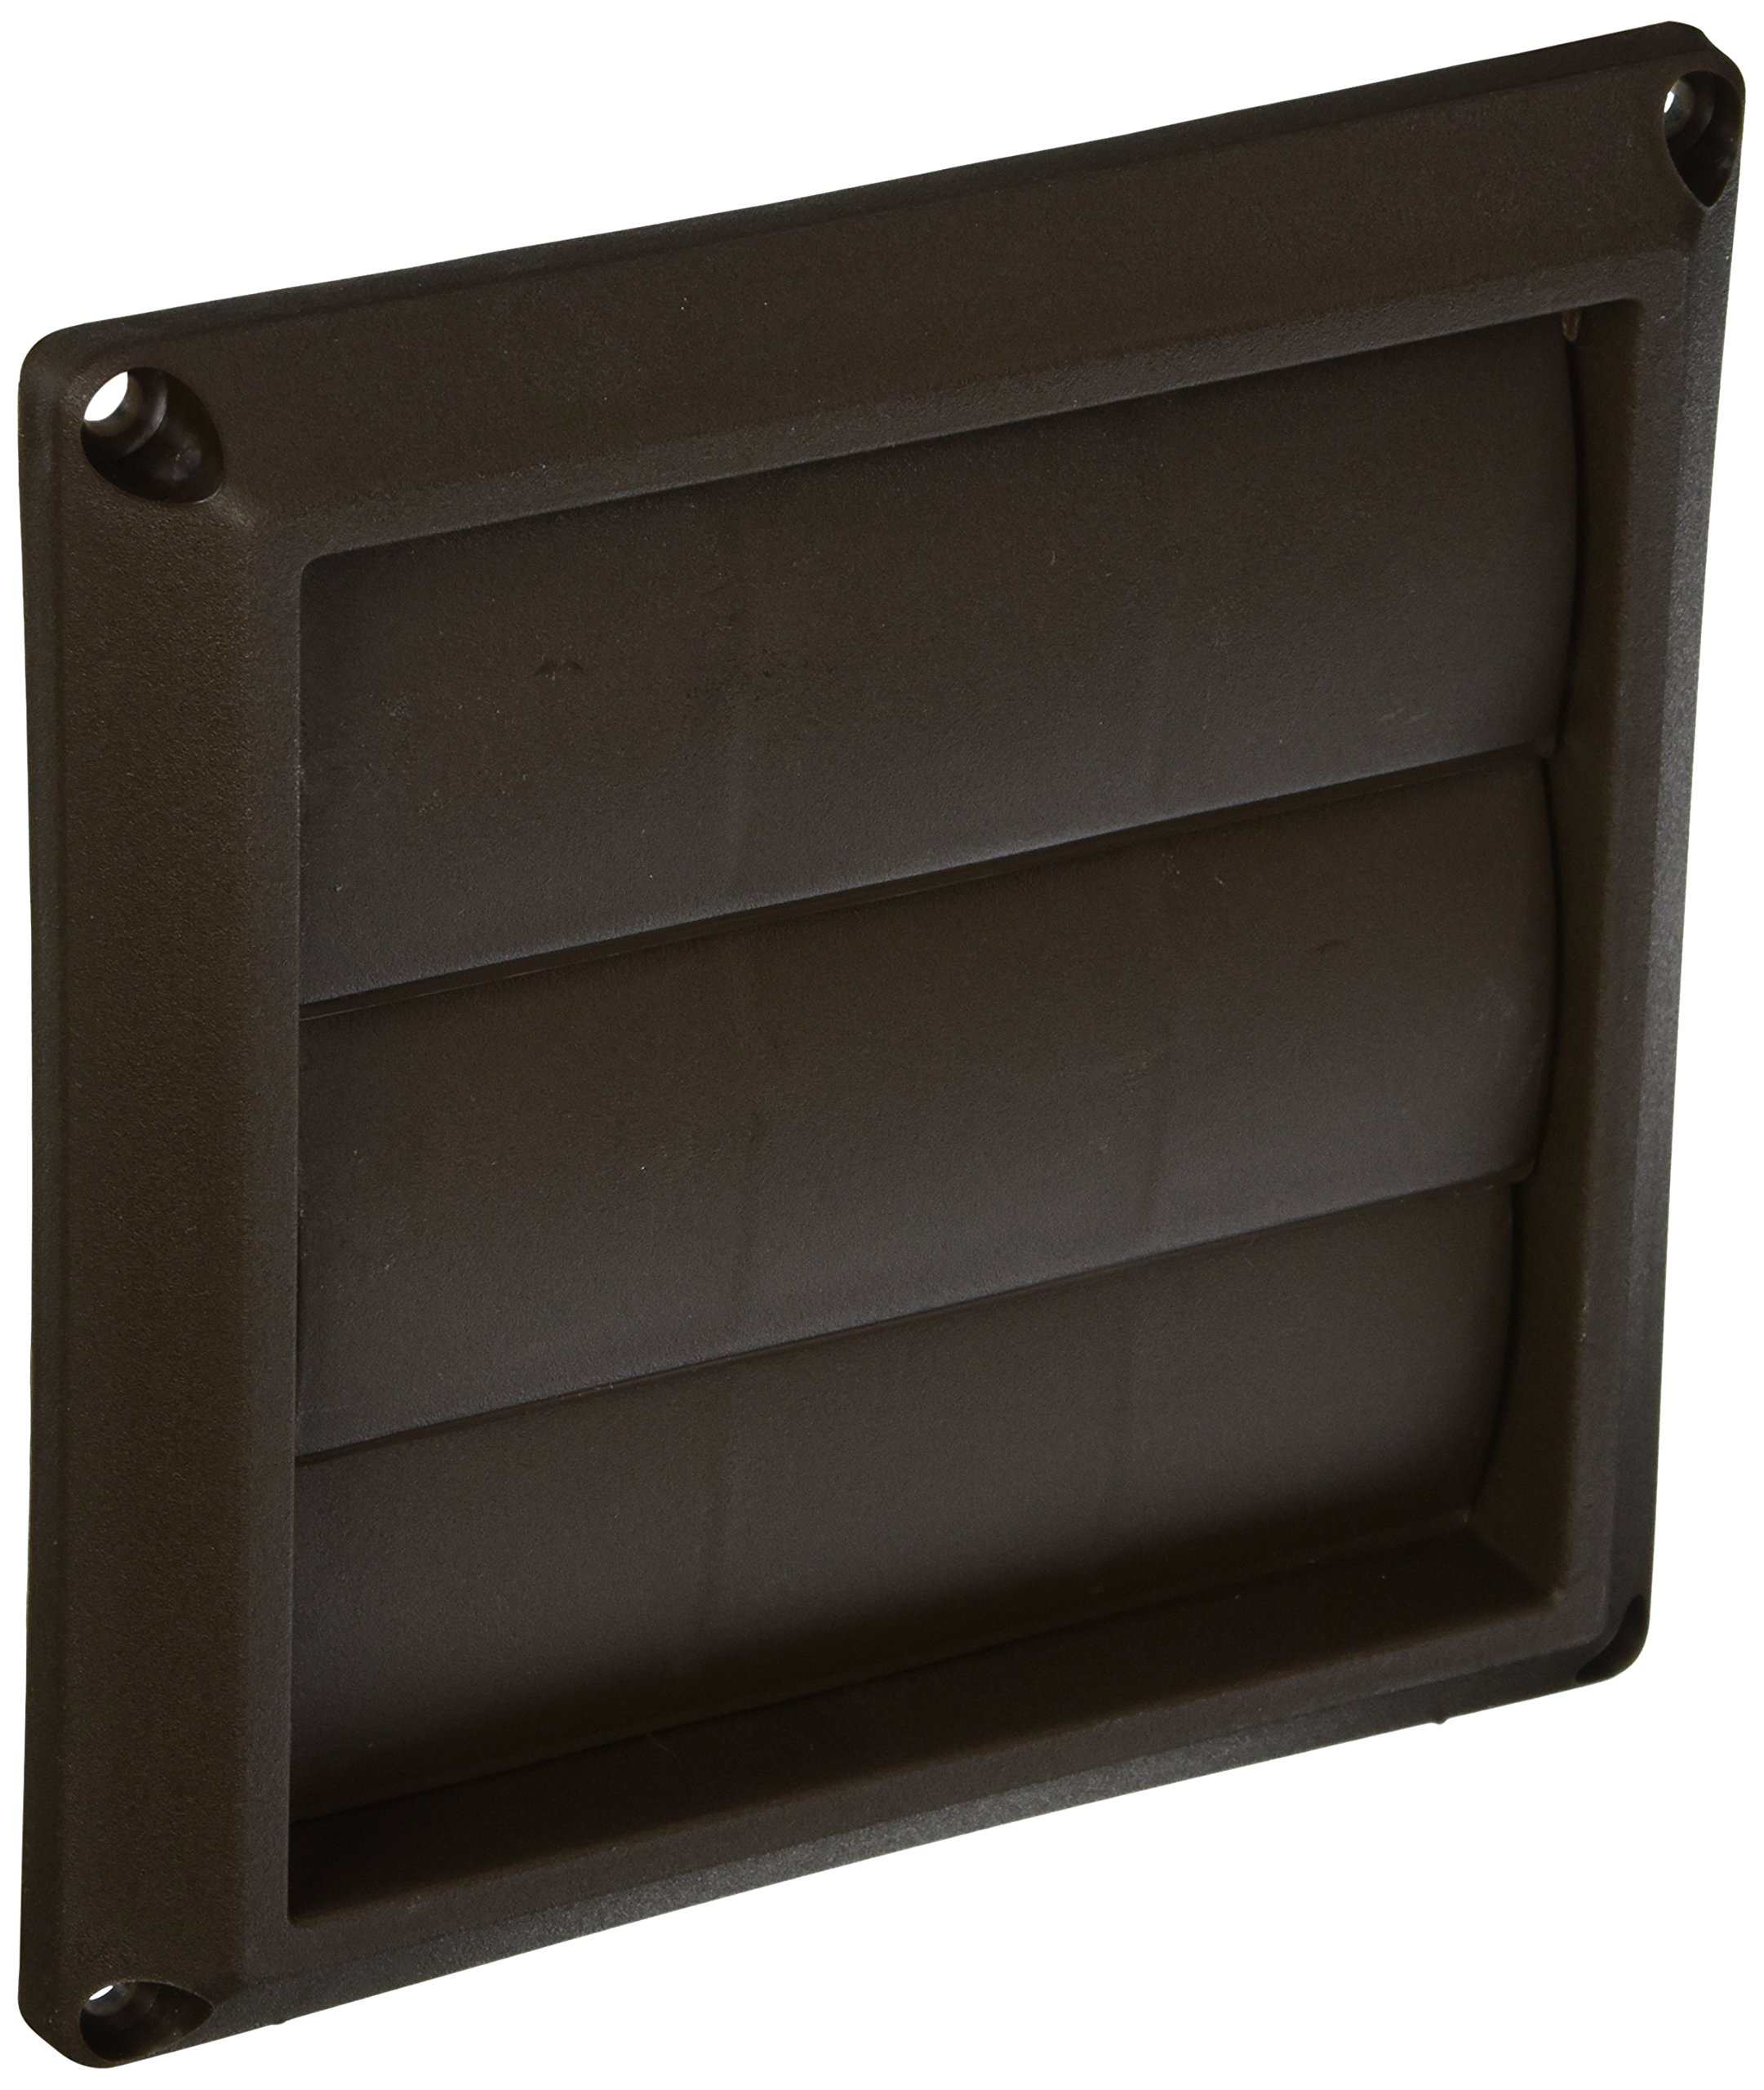 Lambro Industries 2677B Lambro dustries Plastic Louvered Vent Hood, 4'', Brown by Lambro